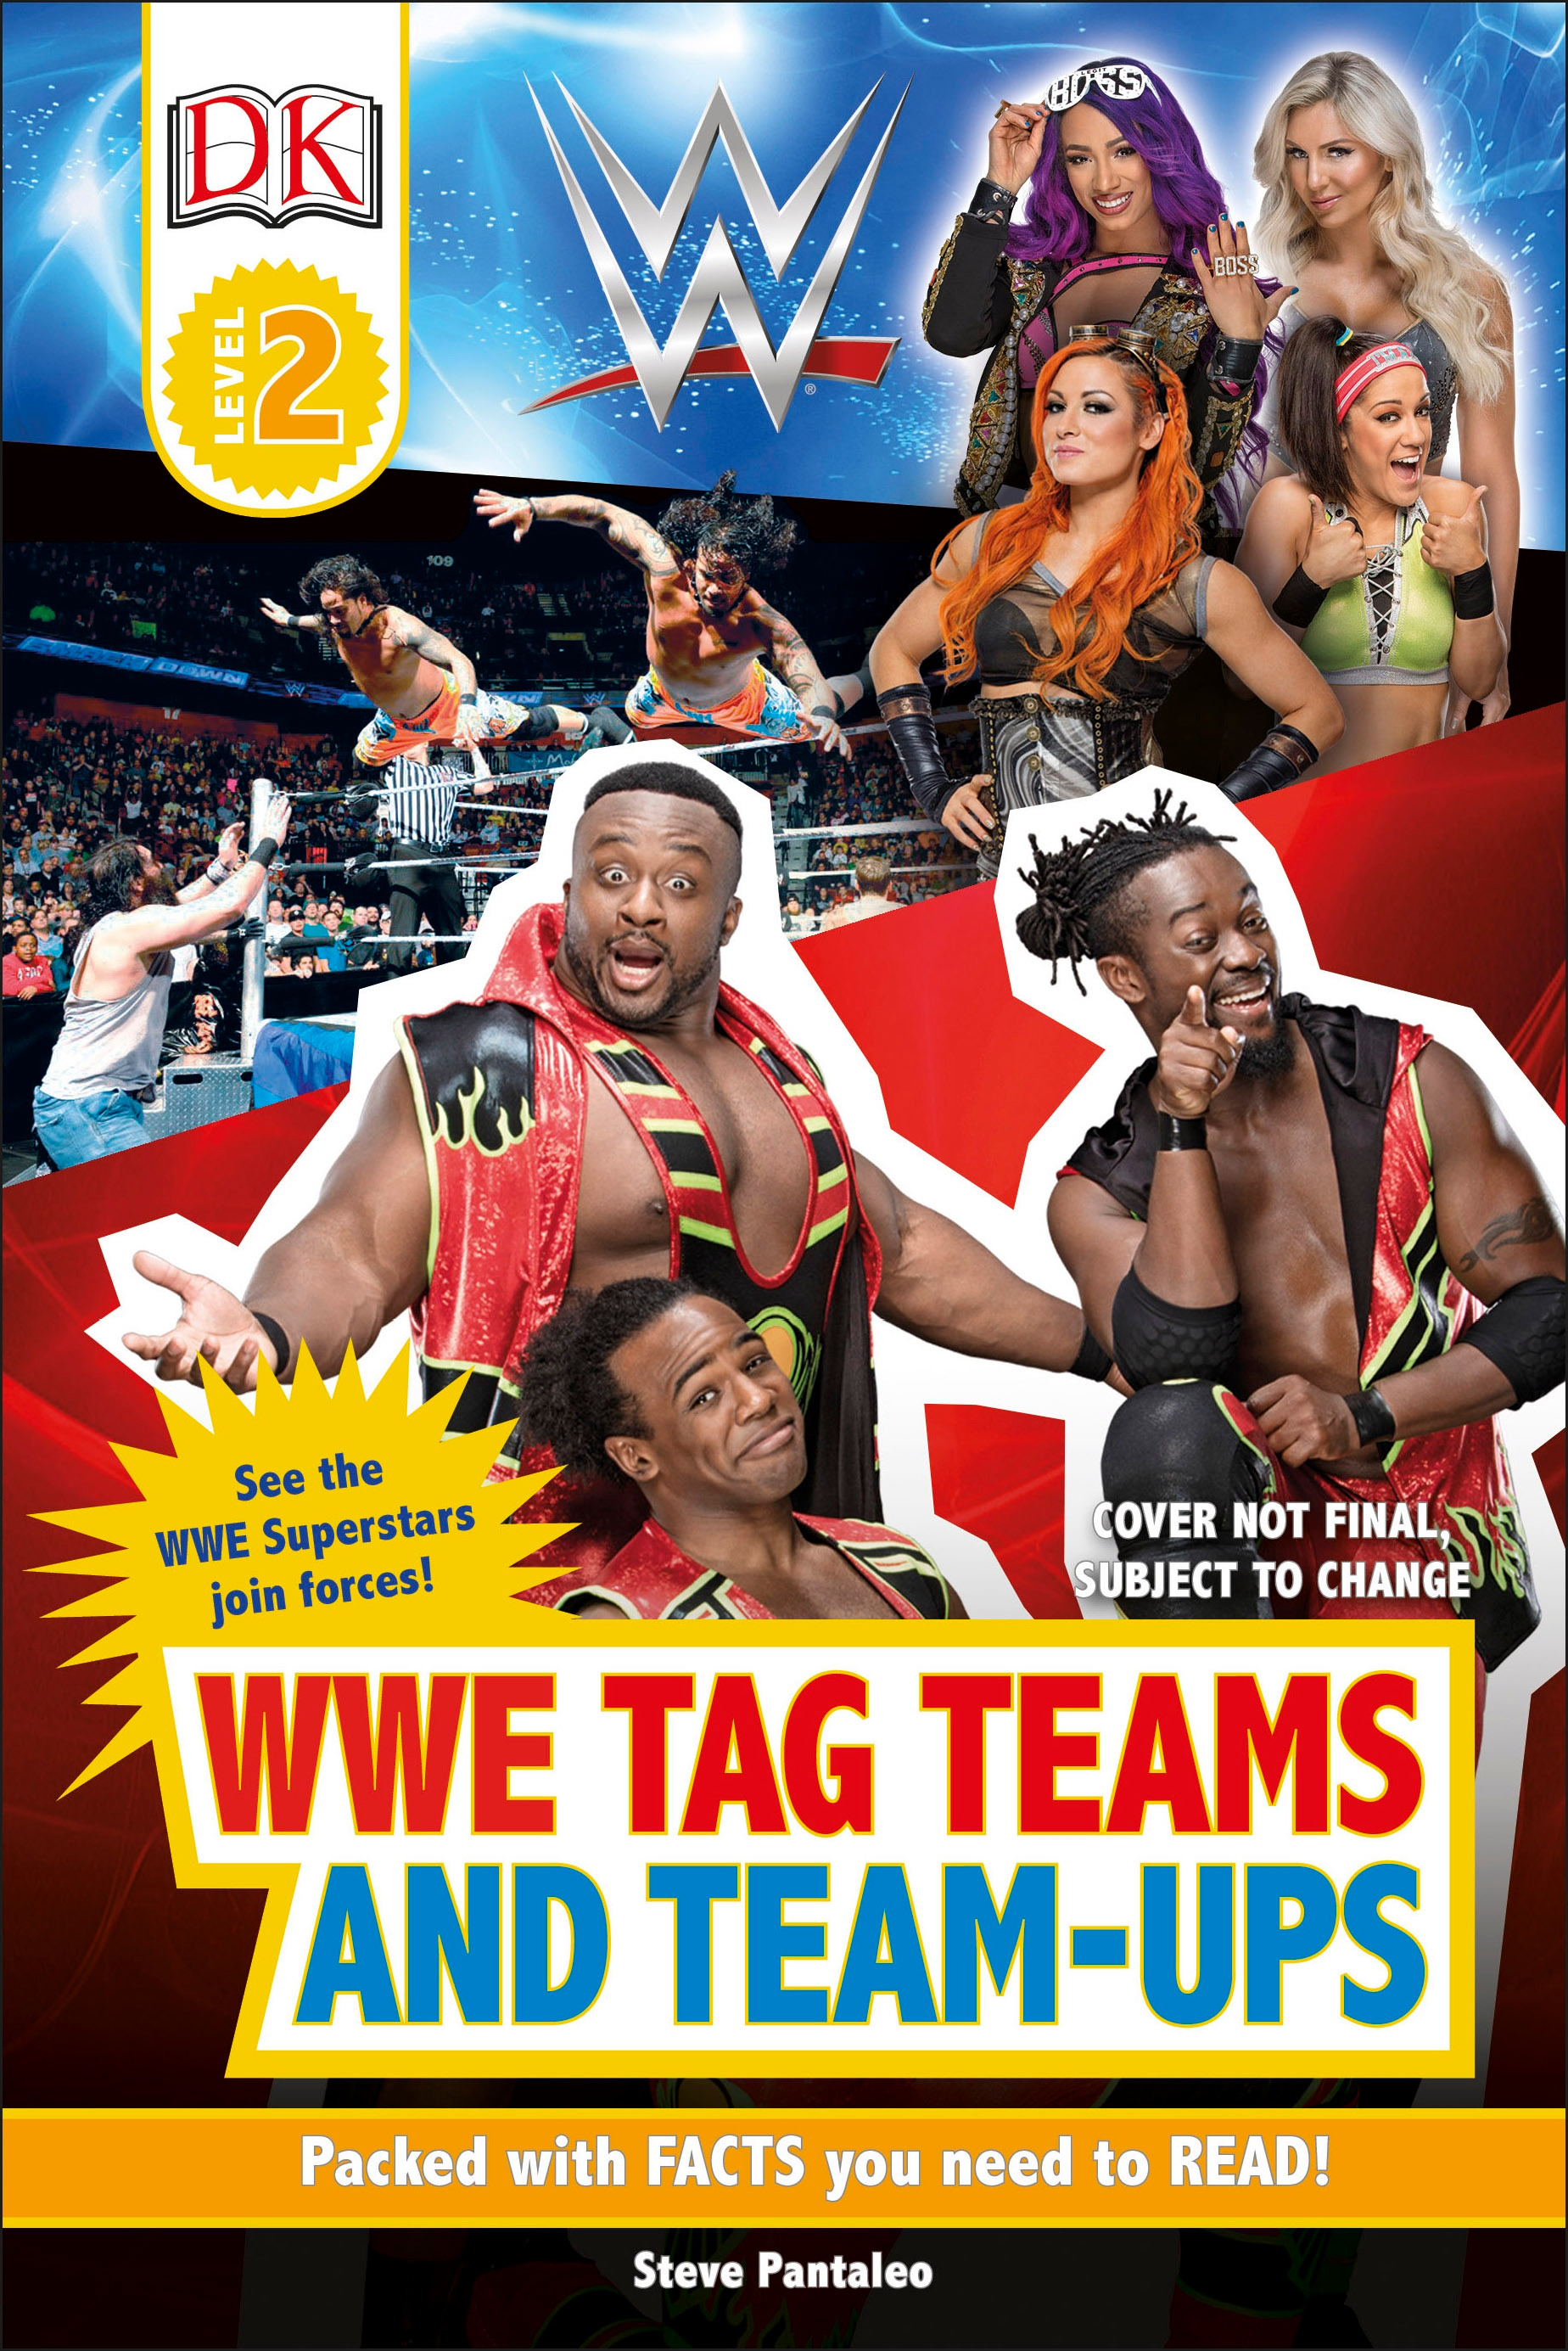 WWE Tag-Teams and Team-Ups by